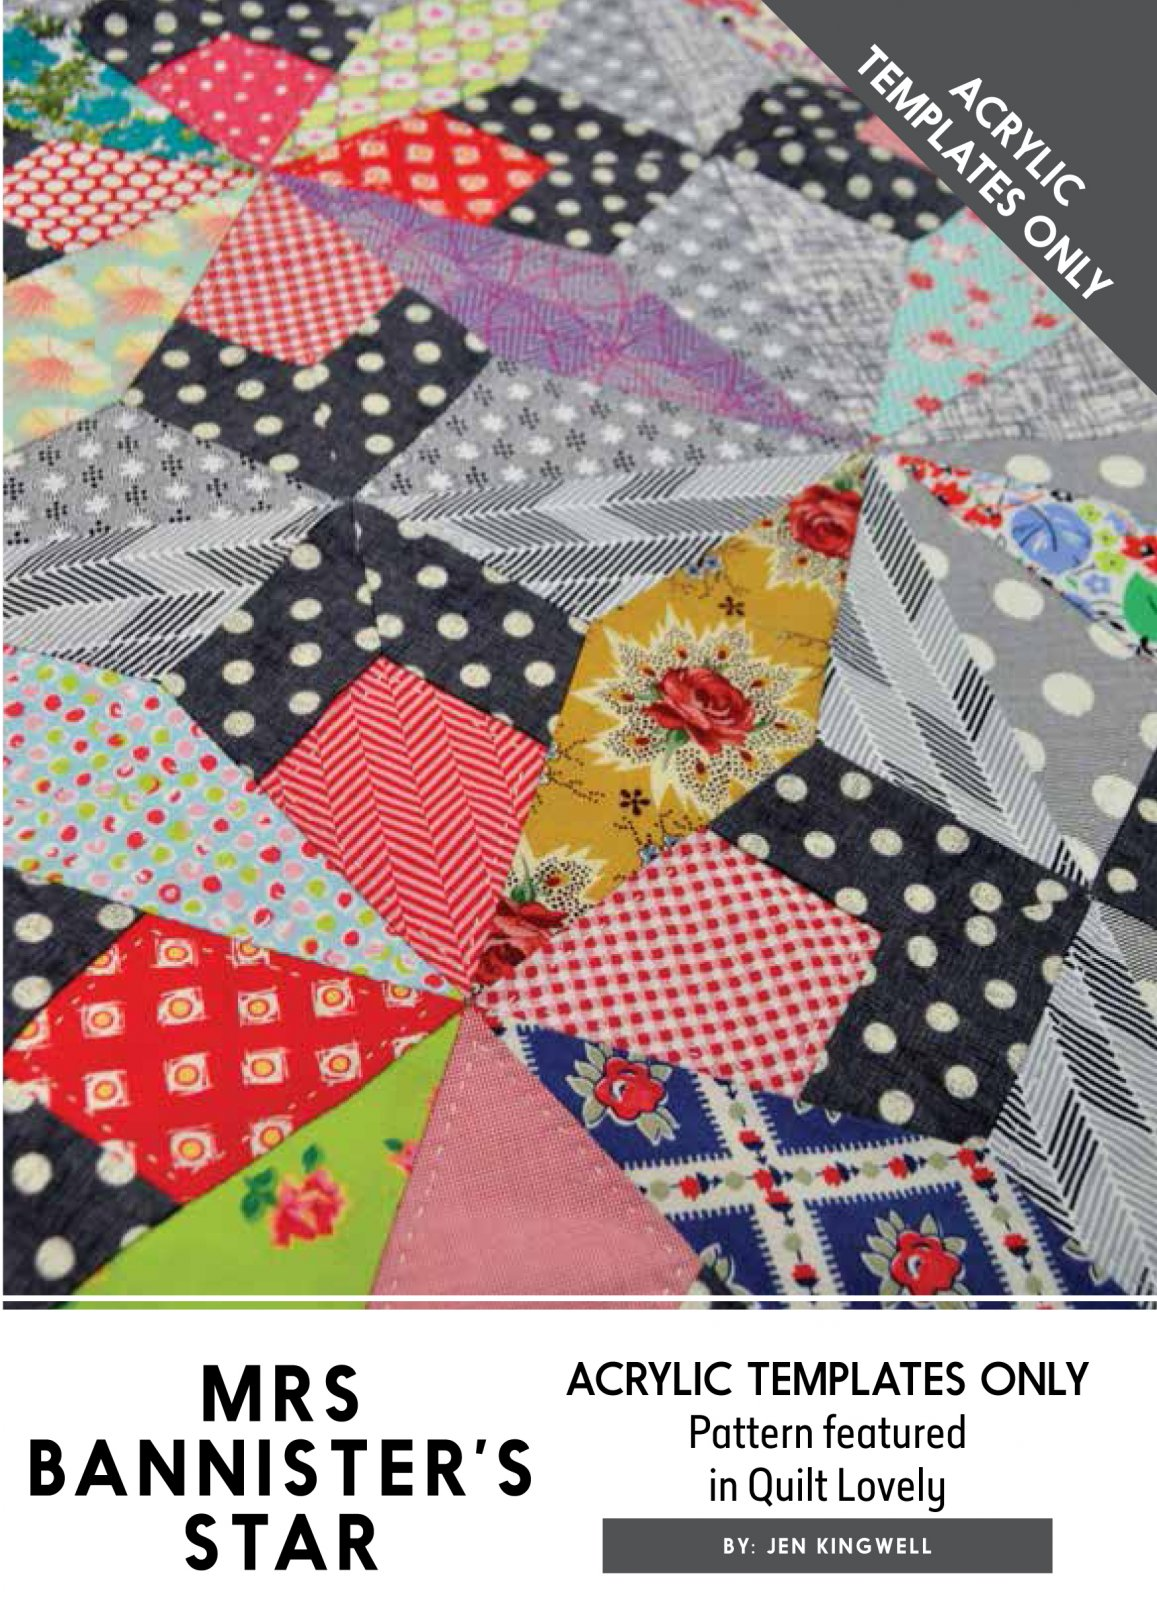 Mrs Bannister's Star Acrylic Template (ATO) by Jen Kingwell